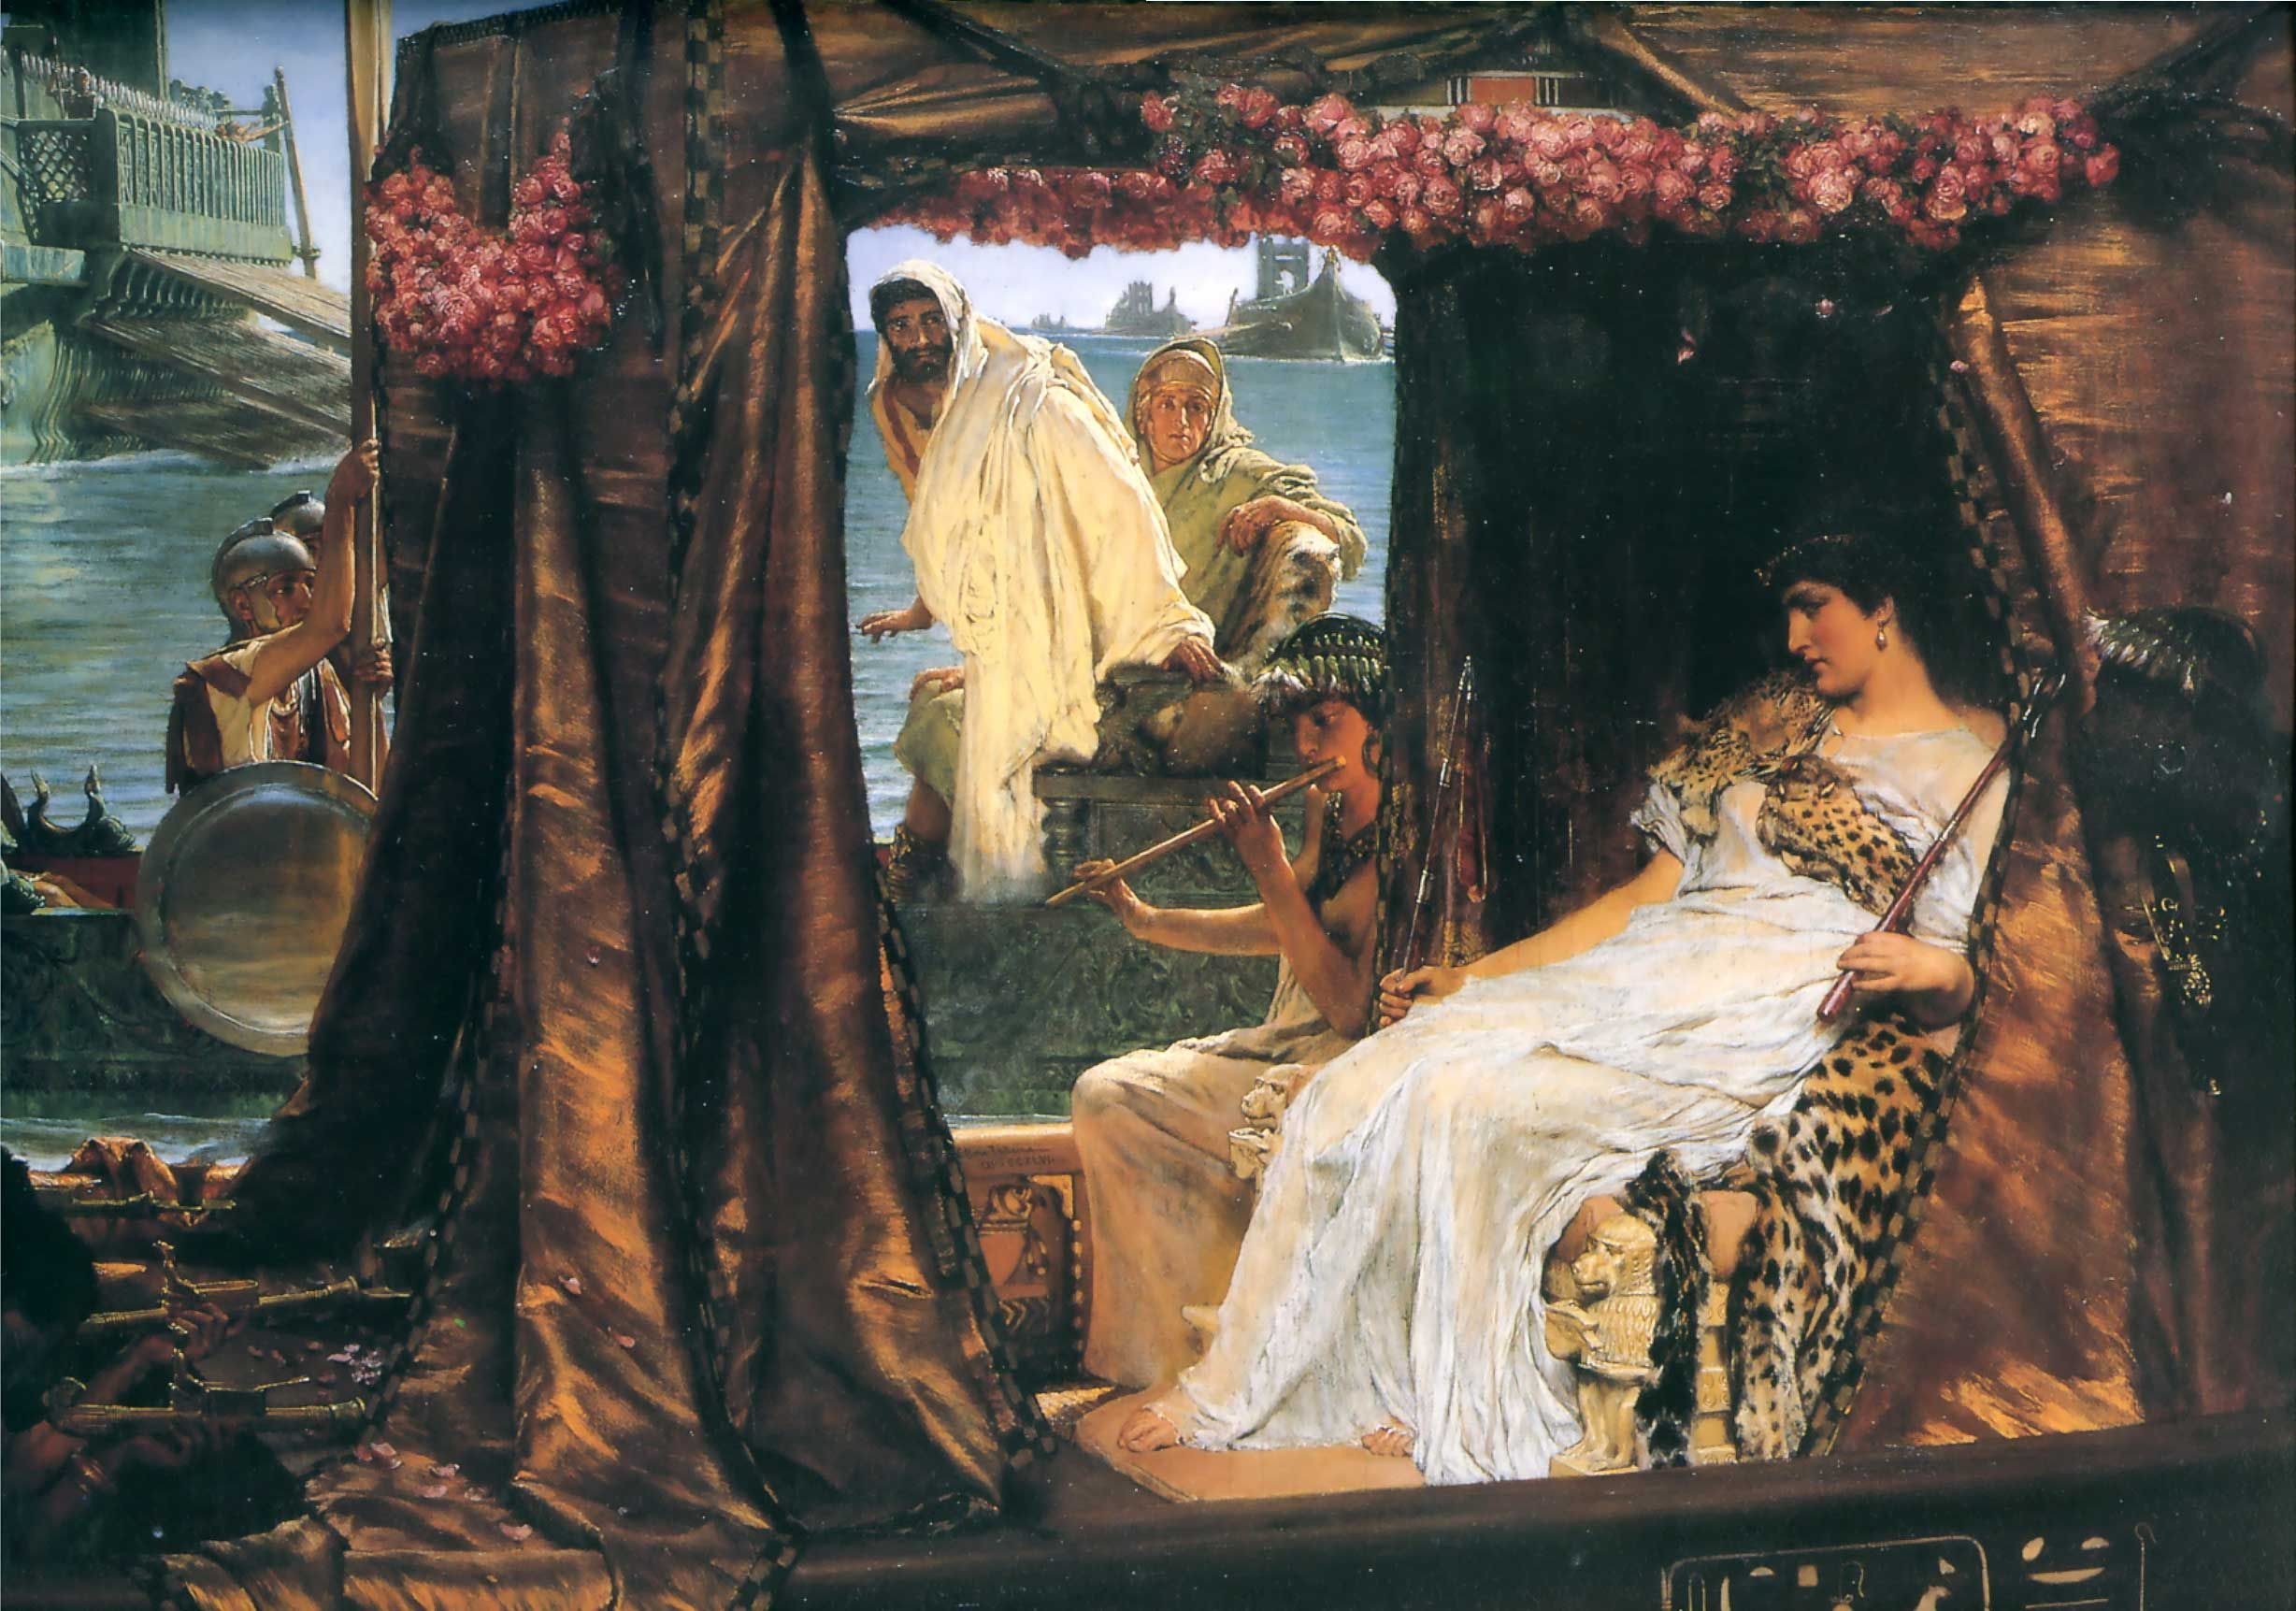 antony and cleopatra 1883 by sir lawrence alma tadema dutch antony and cleopatra 1883 by sir lawrence alma tadema dutch